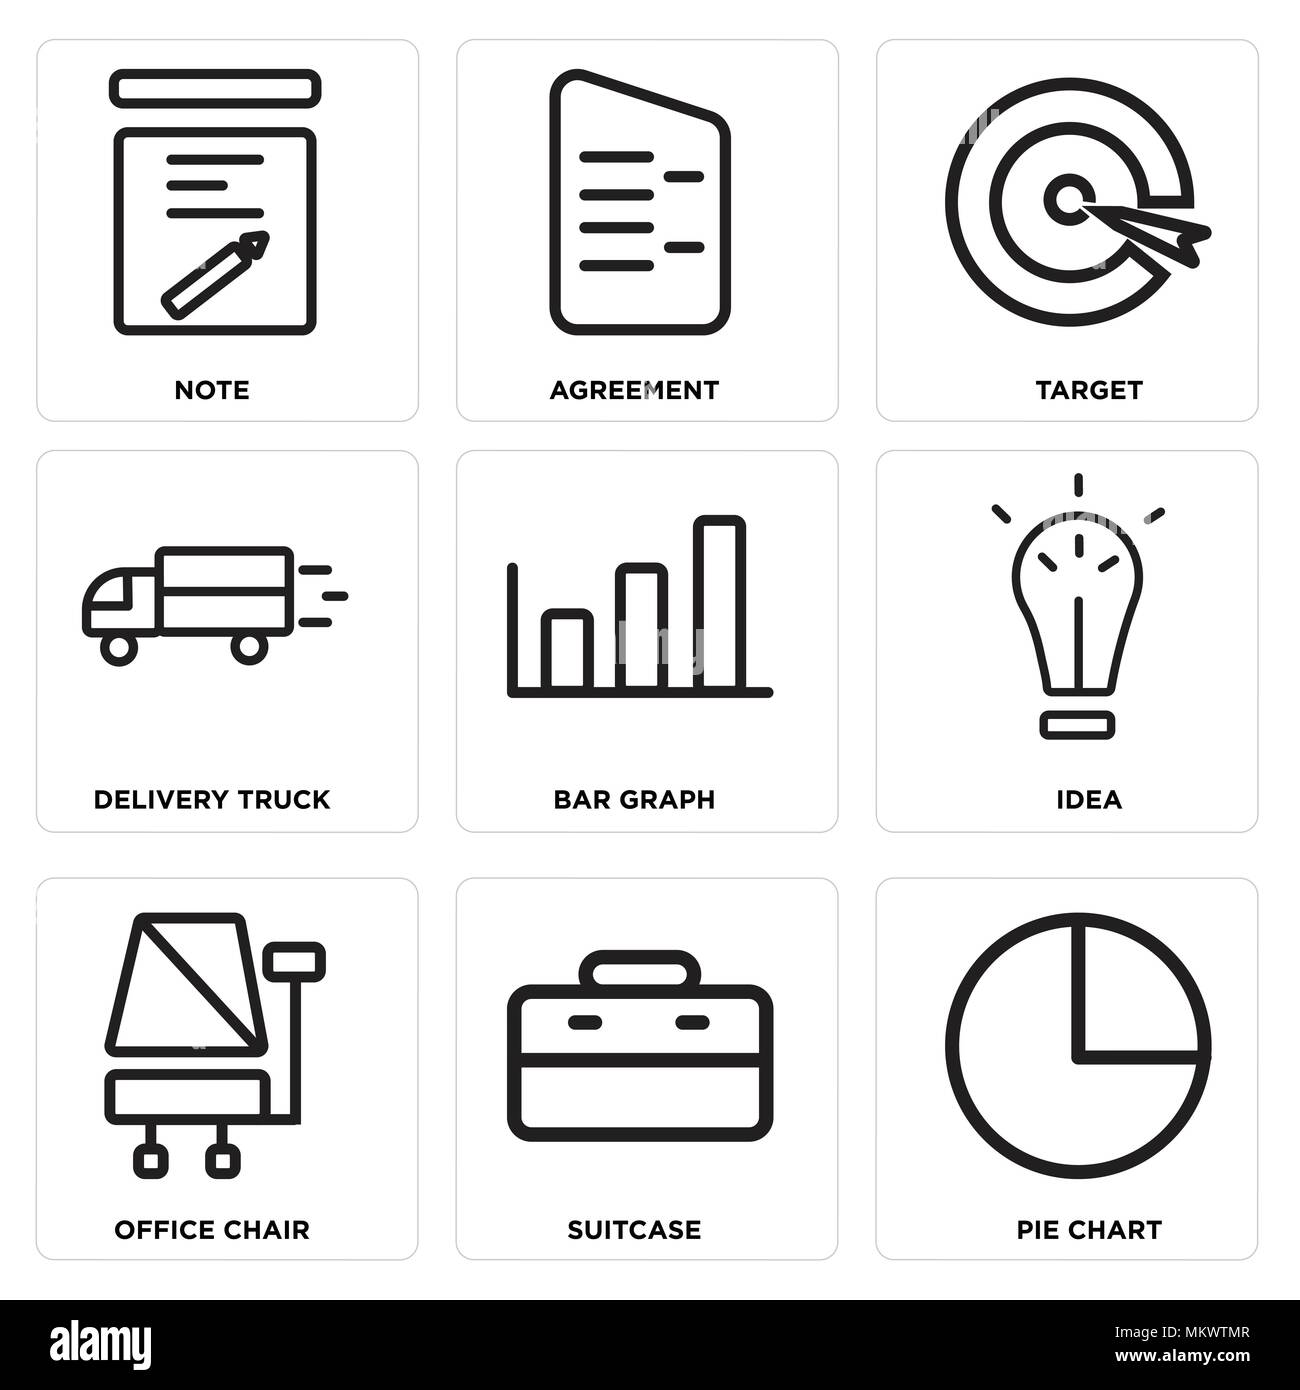 Set Of 9 Simple Editable Icons Such As Pie Chart, Suitcase, Office Chair,  Idea, Bar Graph, Delivery Truck, Target, Agreement, Note, Can Be Used For Mo